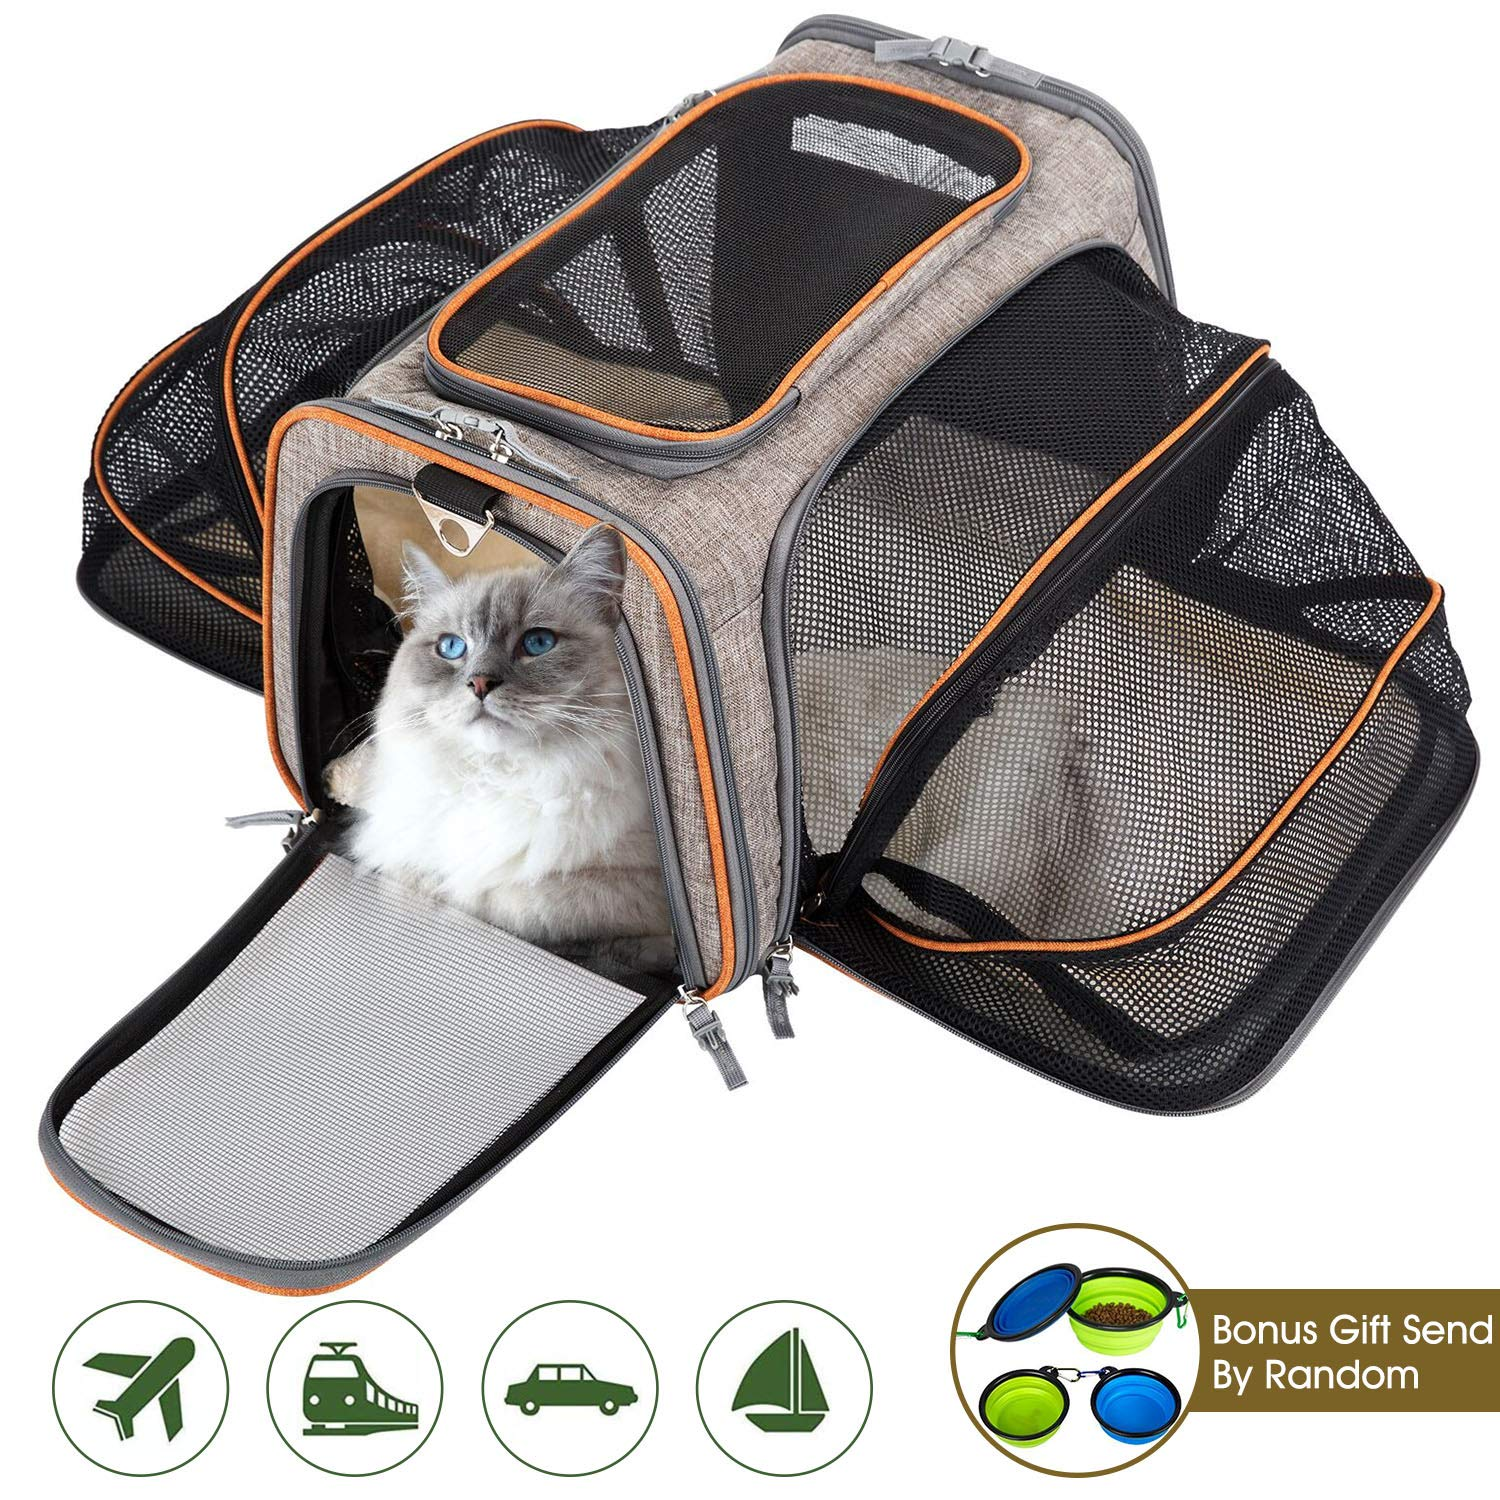 MOVEPEAK Pet Carrier for Cats,Dogs,Puppy with Airline Approved - Expandable Soft Sided Pet Tote Carriers Bags,Folding Pets Kitten Cat Carriers Bags,Portable Pet Supply Carrier Bags for Puppies by MOVEPEAK